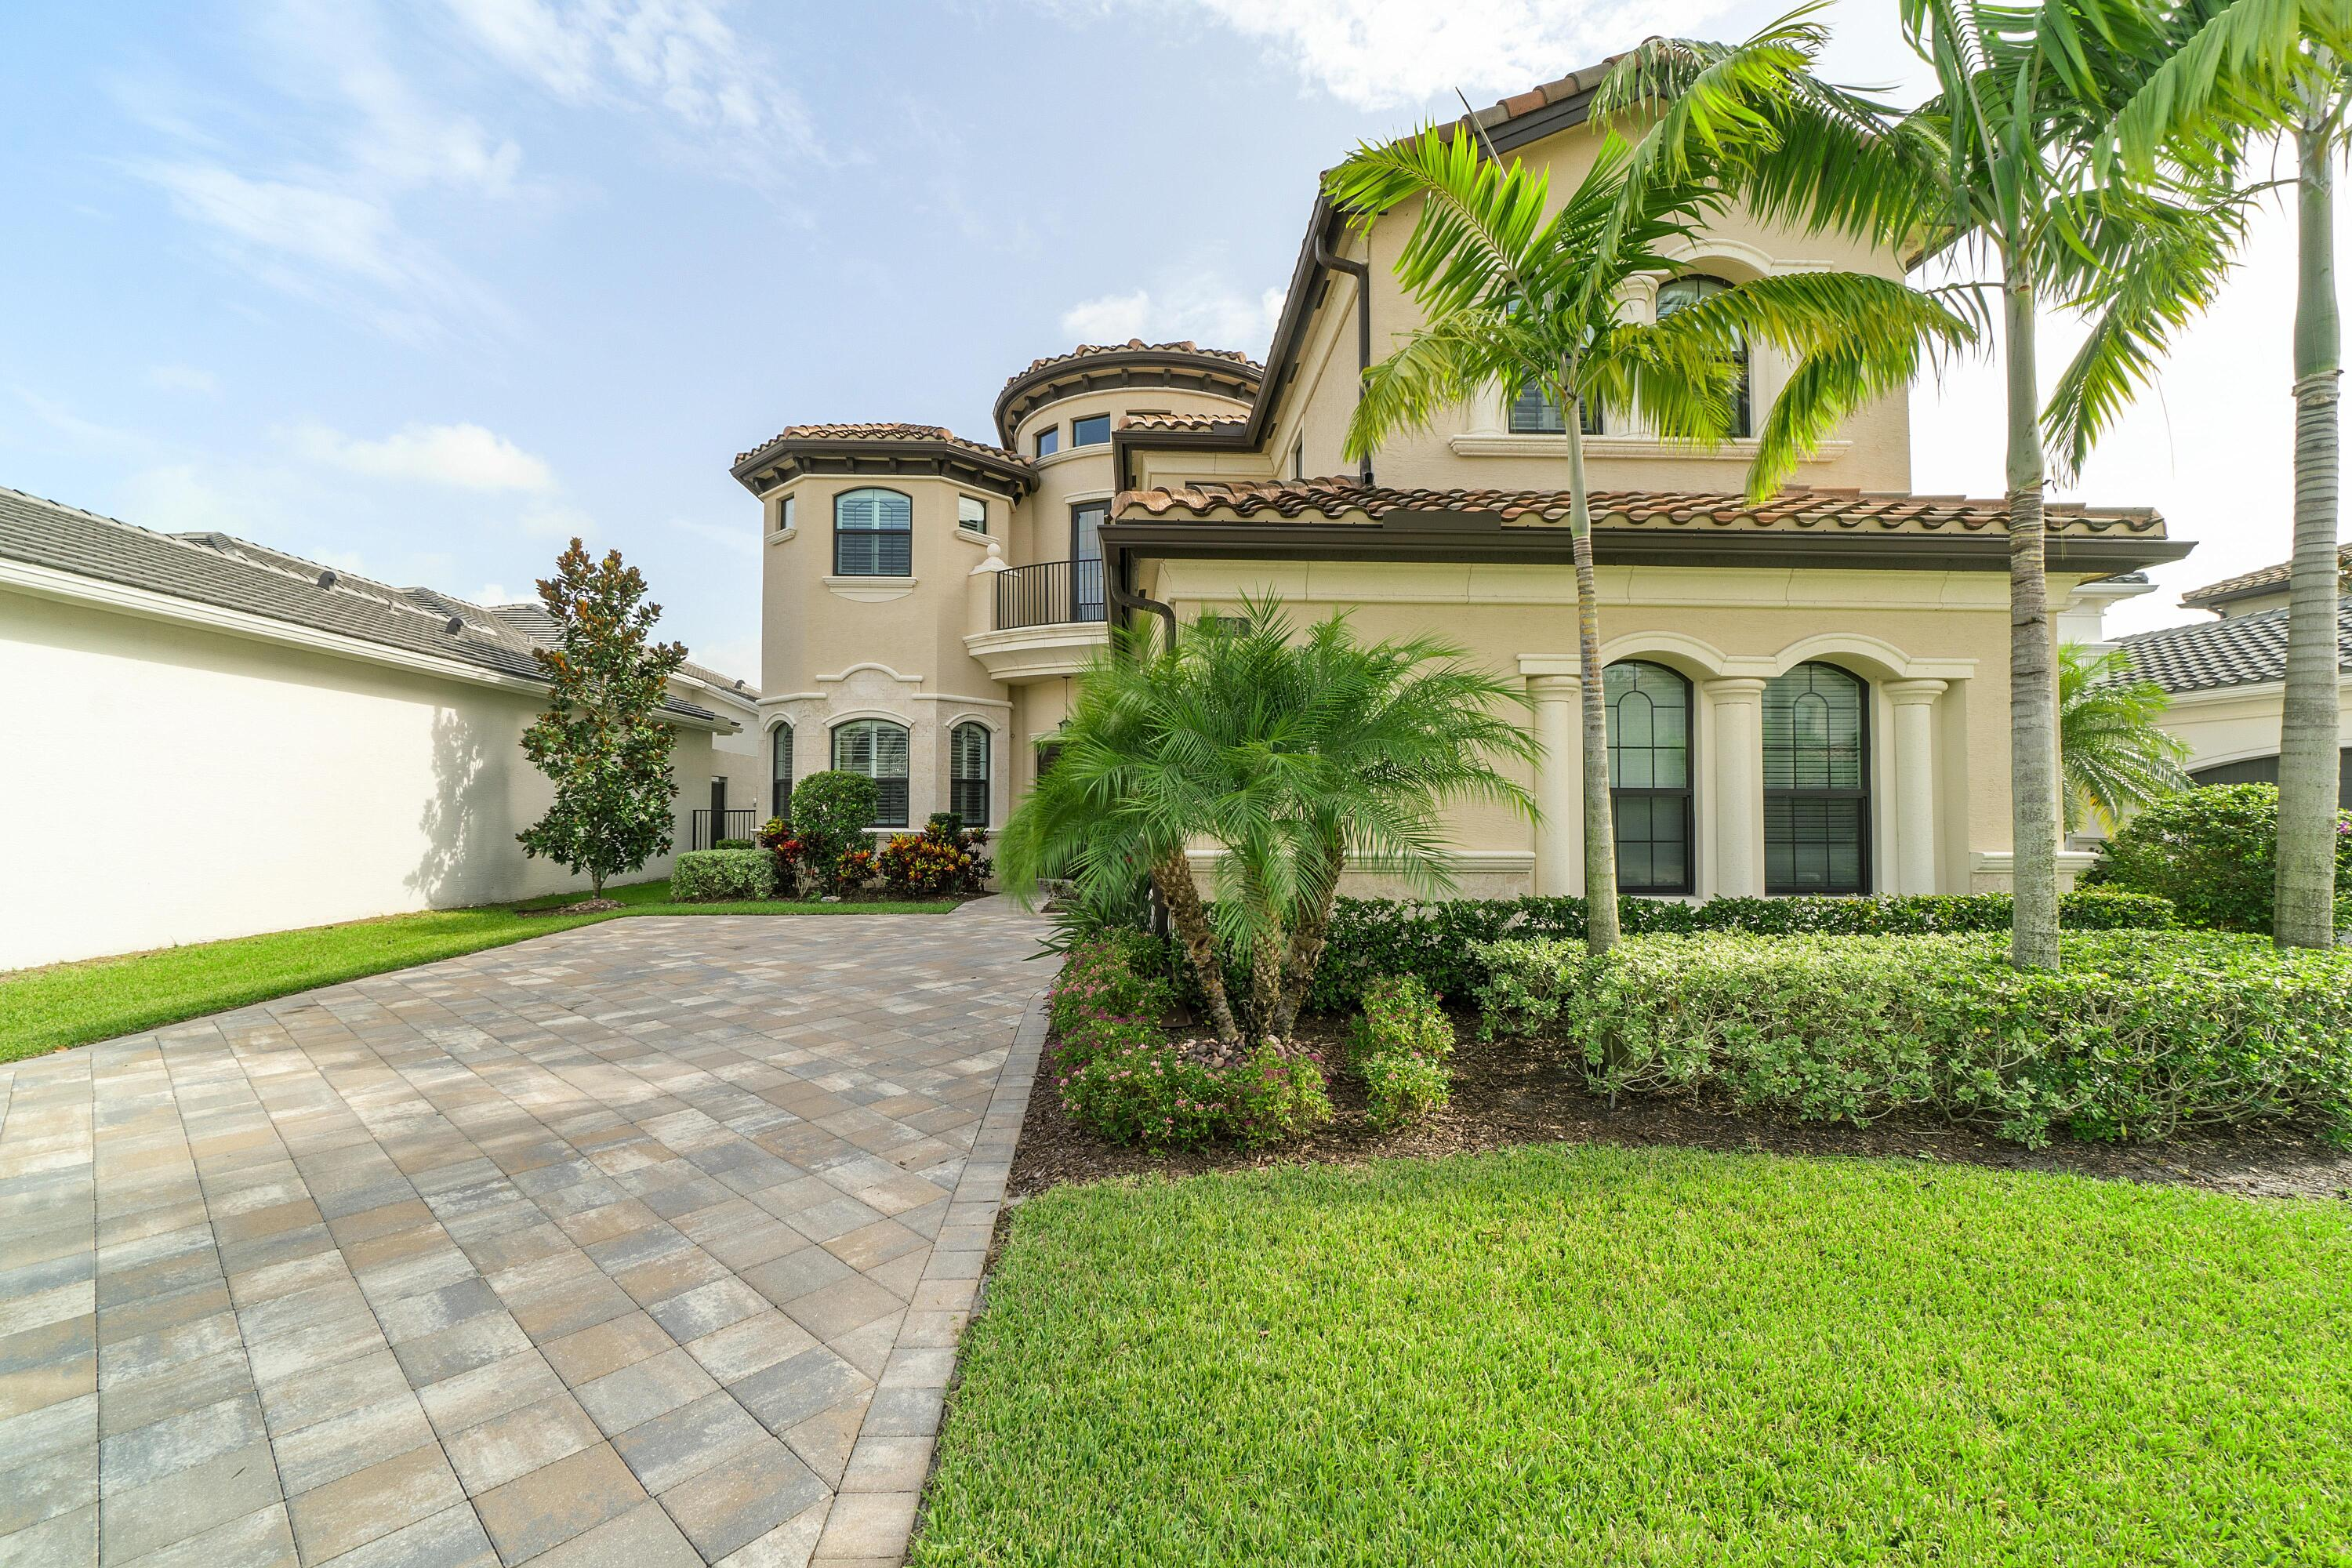 9814 Vitrail Lane, Delray Beach, Florida 33446, 4 Bedrooms Bedrooms, ,5 BathroomsBathrooms,Single Family Detached,For Sale,Vitrail,RX-10733908